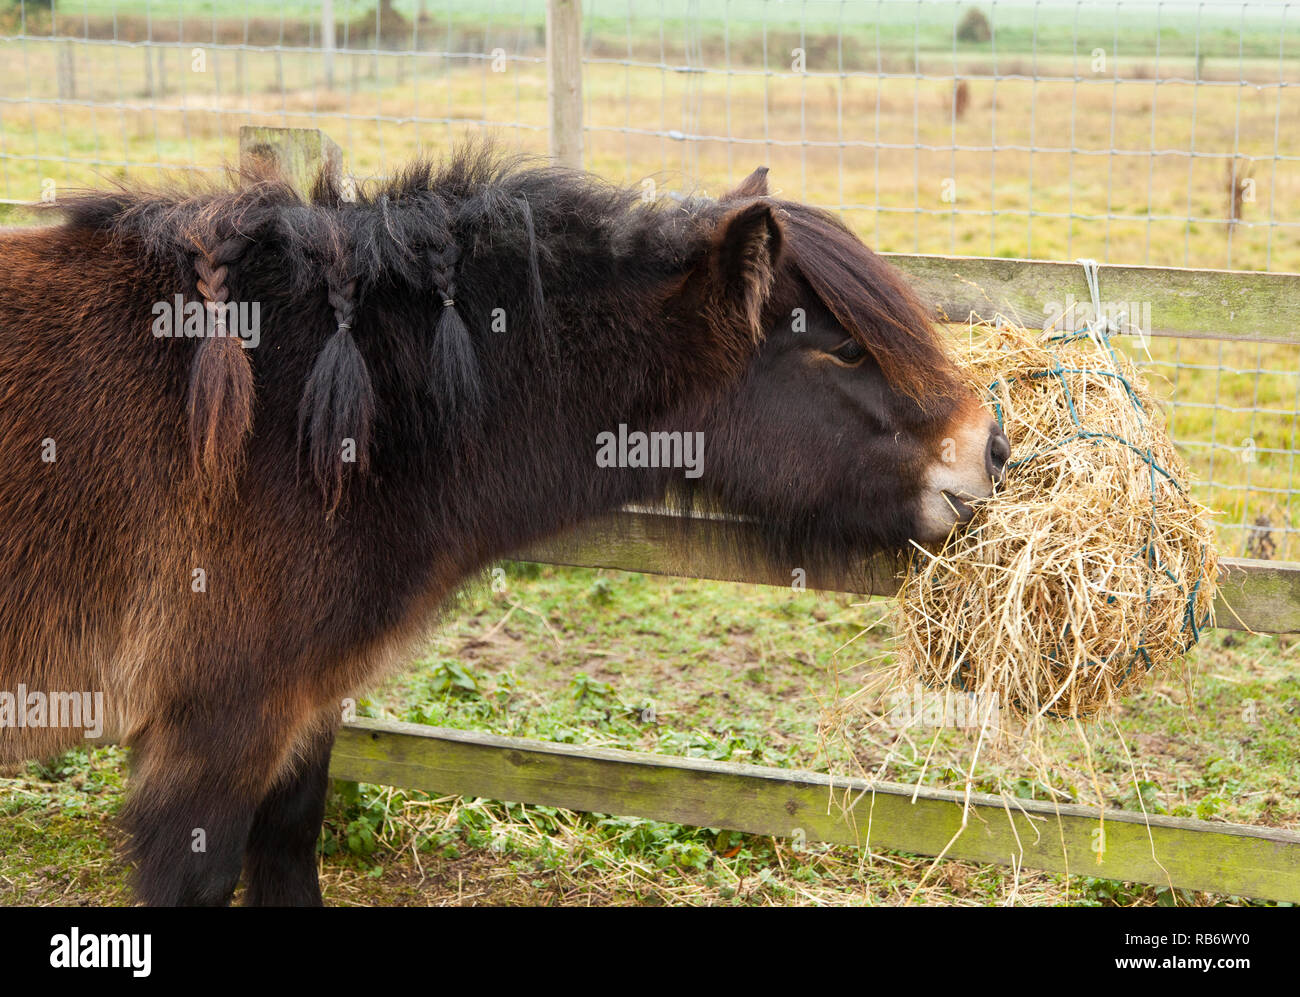 A bay coloured Shetland Pony eating hay from a haynet - Stock Image